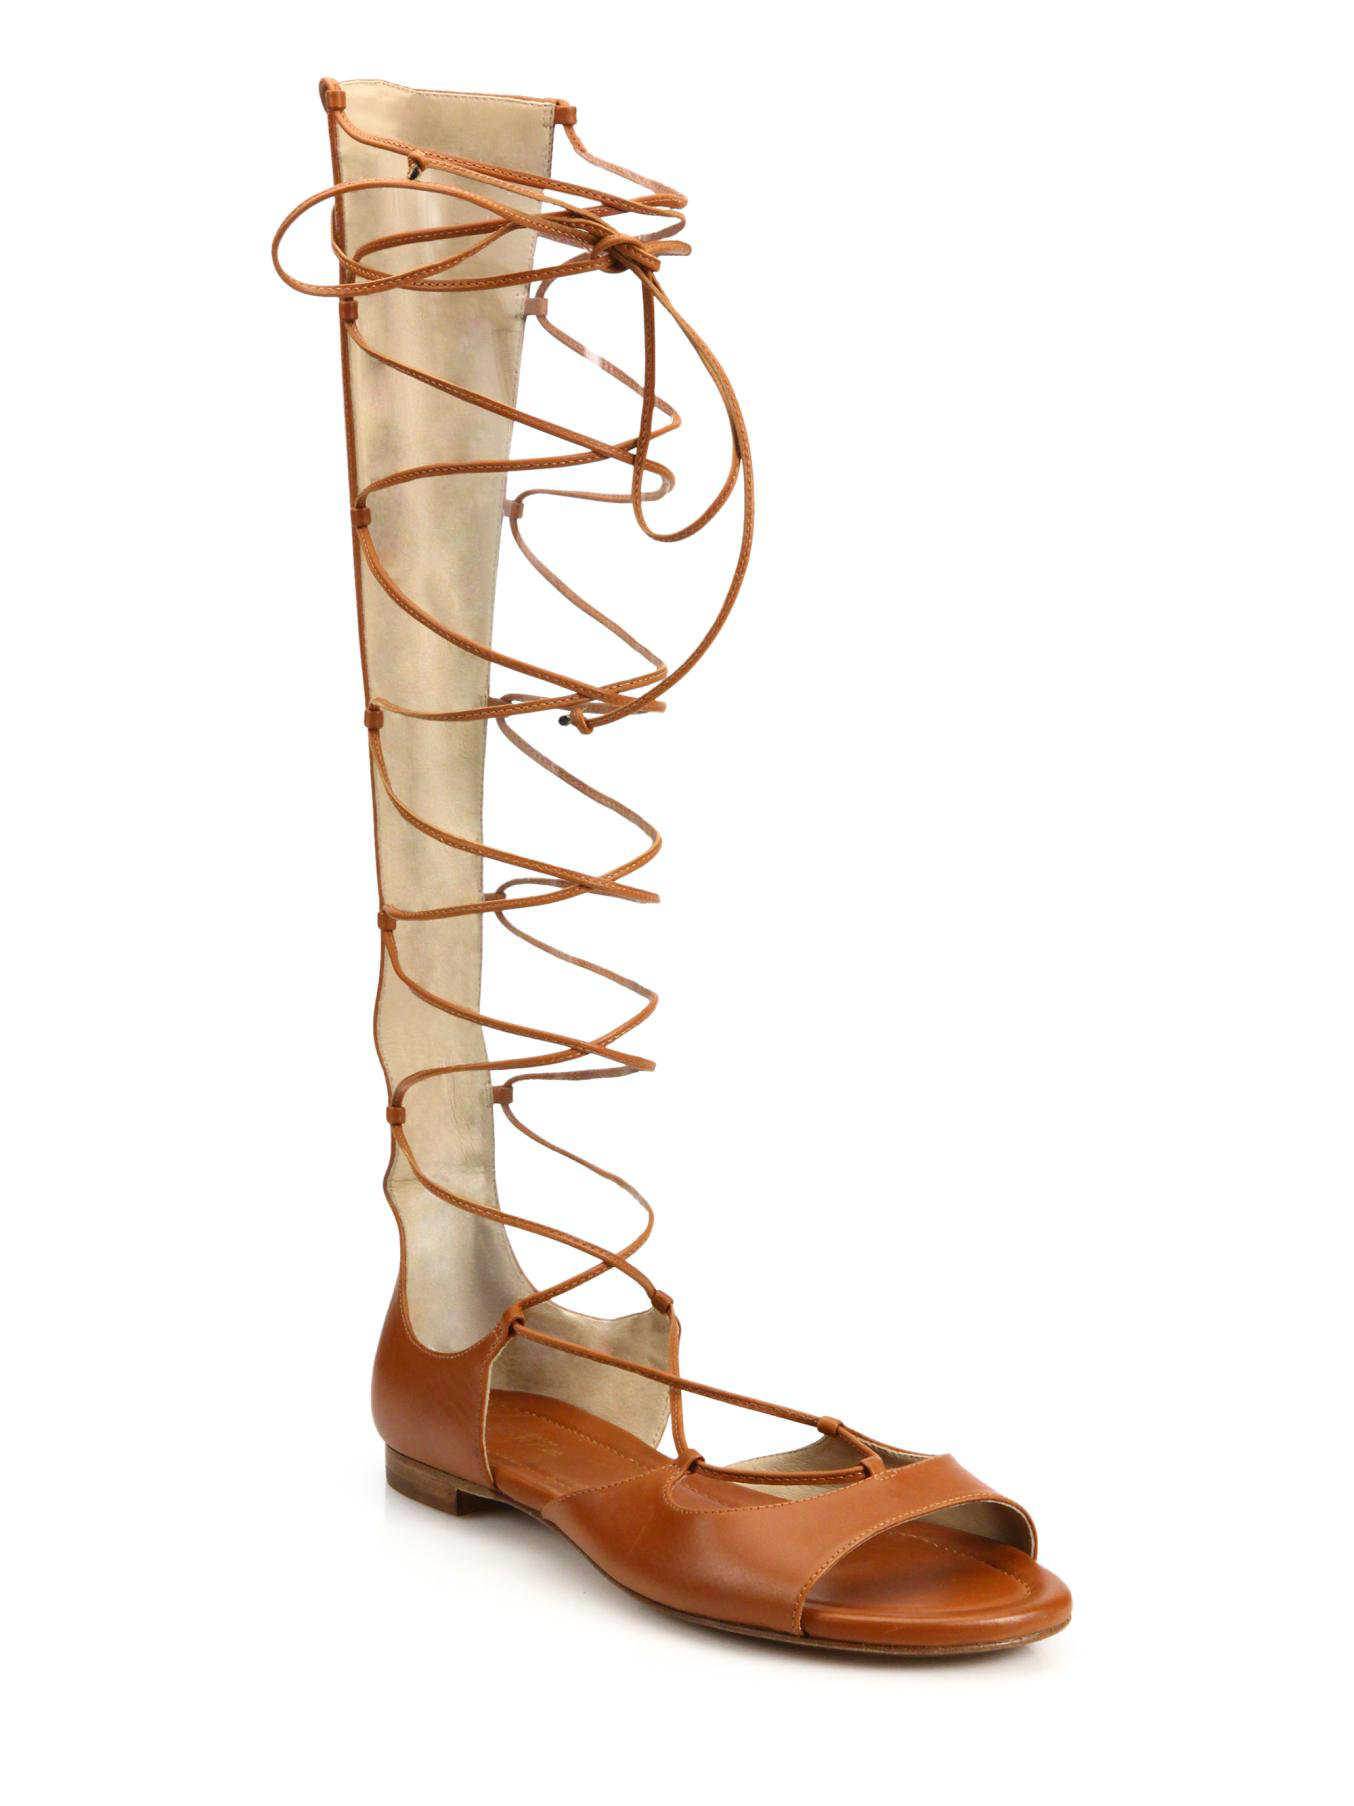 46bf7865e7cc Lyst - Michael Kors Birdie Leather Lace-up Gladiator Sandals in Brown